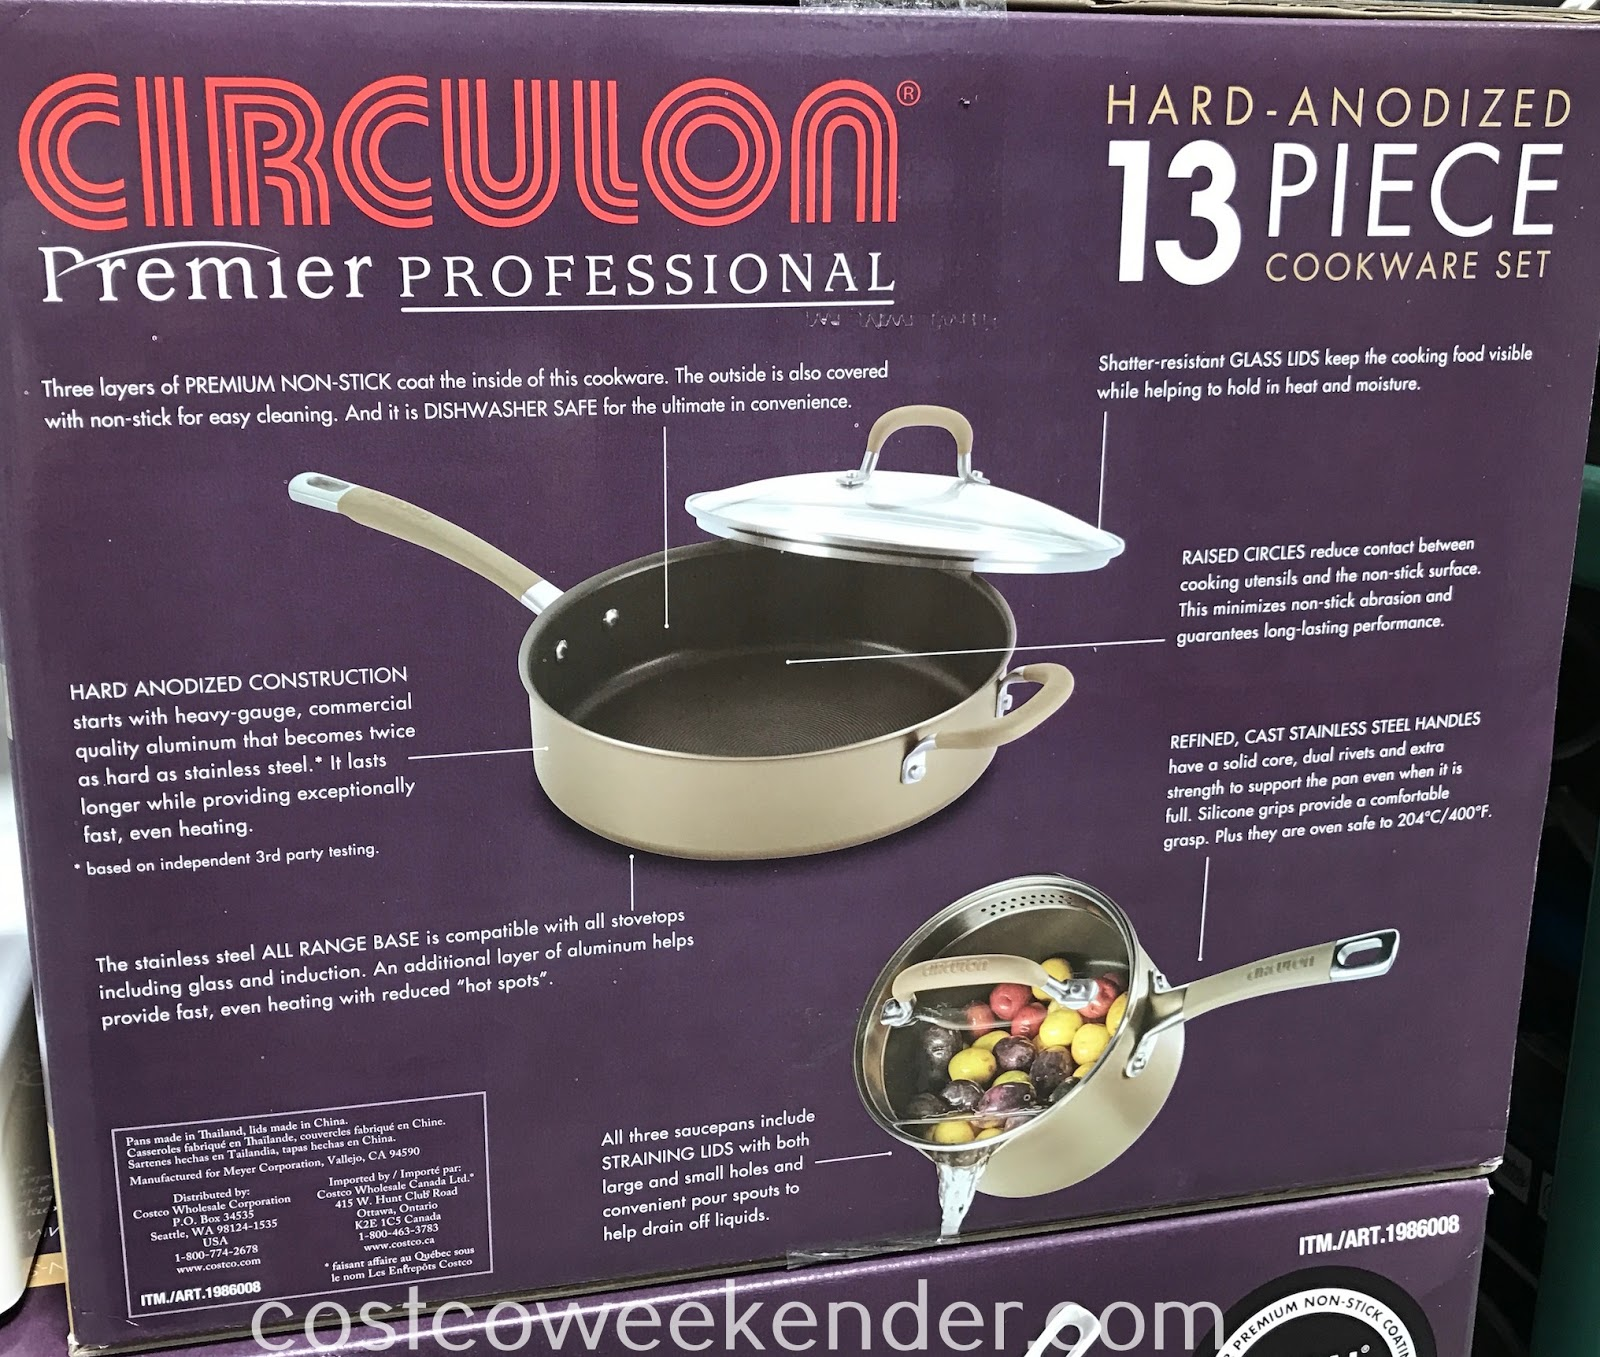 No kitchen is complete without the Circulon 13pc Hard Anodized Cookware Set